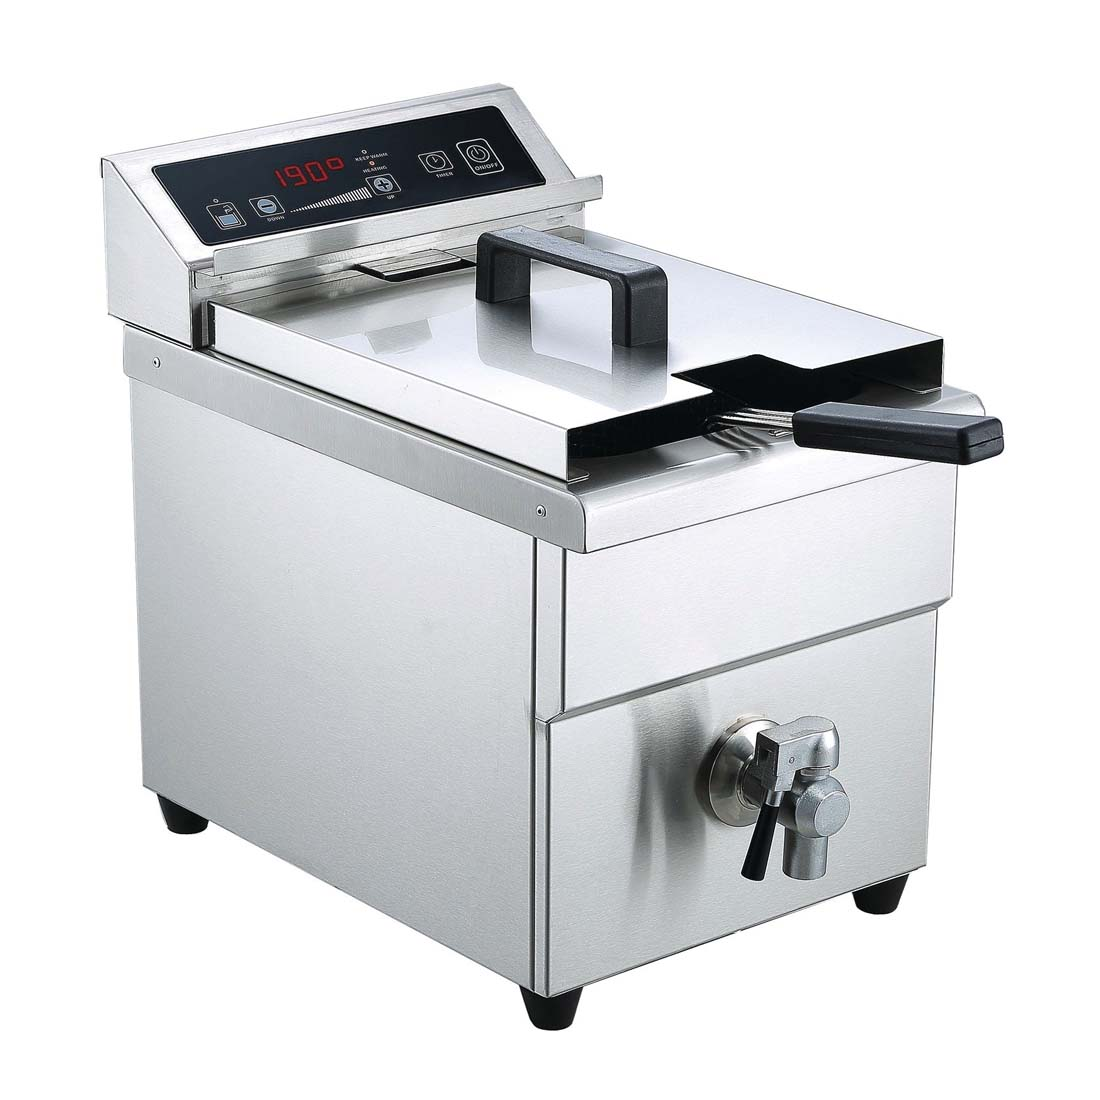 Single tank induction fryer - IF3500S